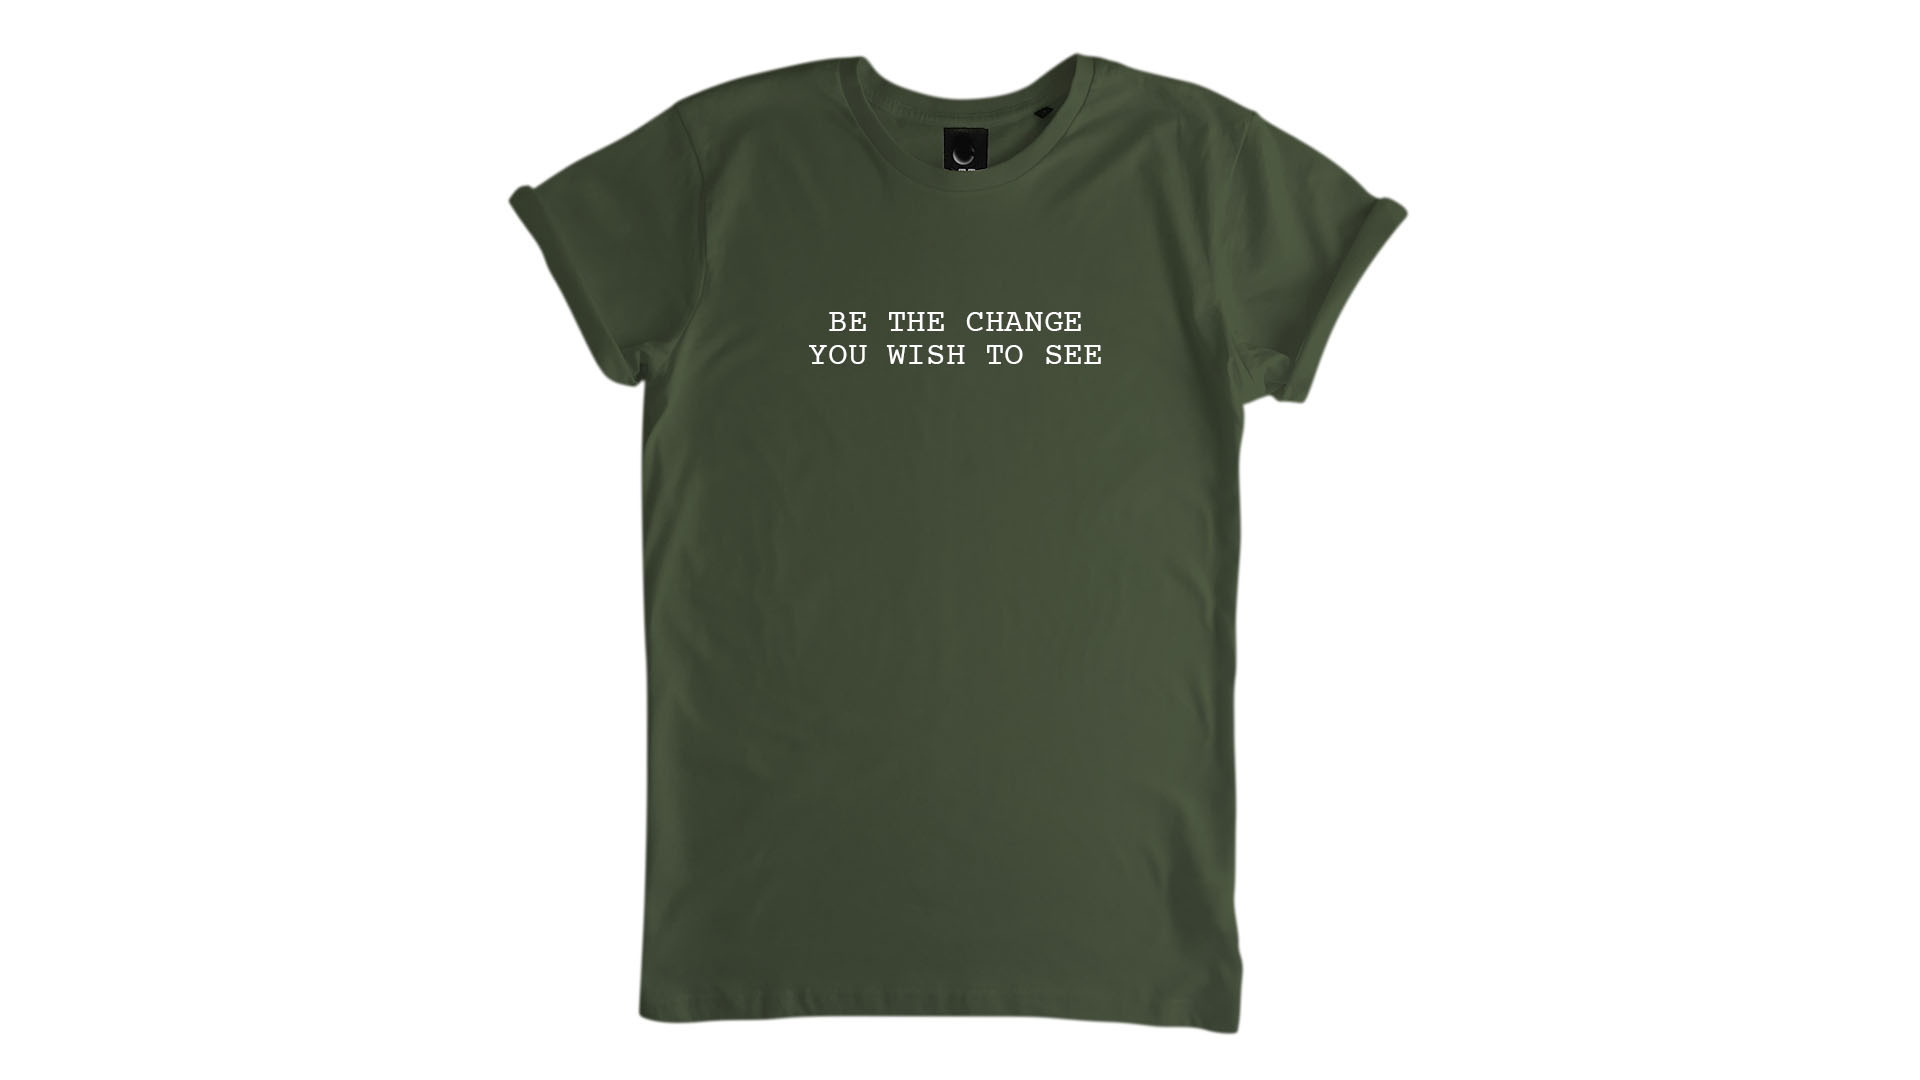 LiveLearn.Yoga Yoga T-Shirt Organic Cotton Be the Change You Wish to See Green